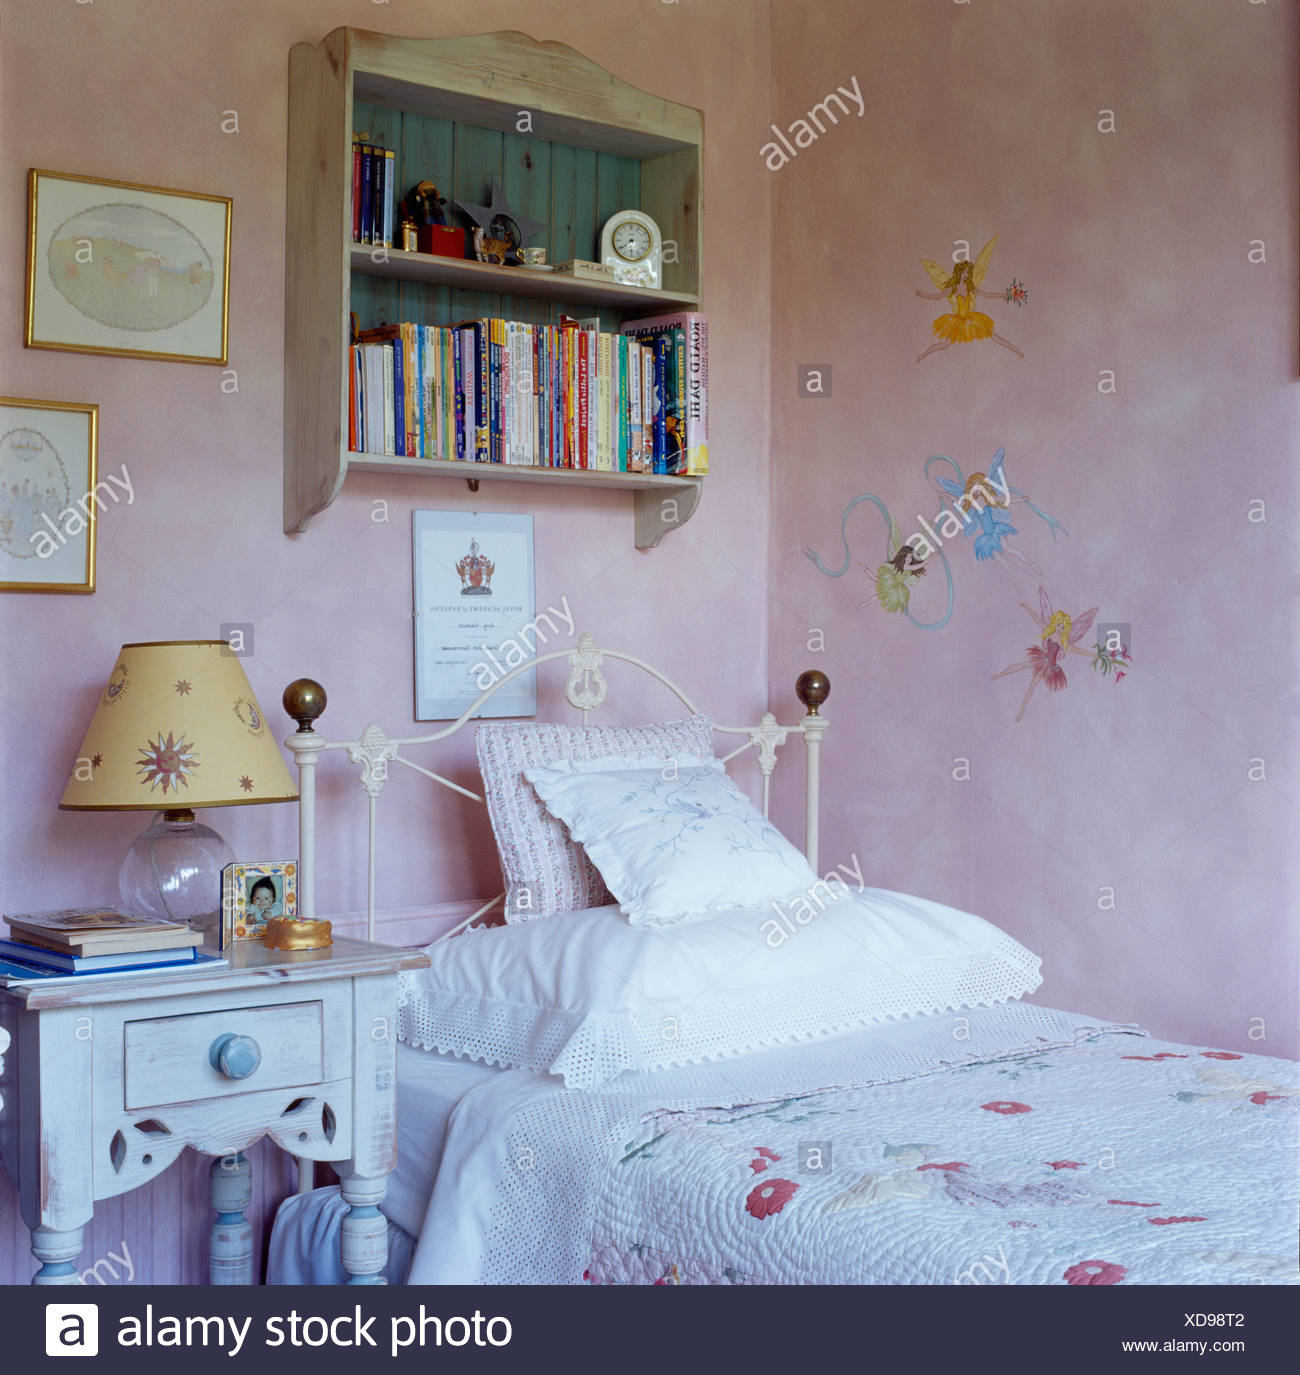 Small bookshelves on wall above white cast-iron bed in child's pink on harriet dawkins, mackenzie tucker, robin wimbiscus, comenic cuccinello iii, marisa tomei, matthew maxwell, sam johnson, robert demkowicz, cast maleficent, daniel baxter-leahy, gwendolyn gilchrist, cast that awkward moment, henry field, iris leslie, joseph field, ronald russell, erica towle-powers, jackie hagley, daniel hendricks, nichole wimbiscus, diane e. hamlin, justin ashforth, lisa carlton, owen thompson, nick stahl, hope berry, sara armstrong, rachel freeman, ryan ecker, cast mad max, parker spear, eric rahkonen, adah holman, shyann gauthier, andrea wright, dale johnson, rebecca benner, frank t. wells, william wise, joshua mills, jessie lanoue, philip spearing, jonathan walsh, veronica cartwright, christopher adams, cast crash, john campanello, tom wilkinson, deborah derecktor, daran norris, sam cousins, misty seekins, bill dawkins, cast death proof, brian hagley, tyler shane smith-campbell, natalie russell, francis mazzeo, jared mekin, bethany berry, erin barksdale, karen allen, don lewis, sissy spacek, chelsea peasley, elly barksdale, evanne weirich, william mapother, camden munson, elisabeth mcclure, harold withee, david blair, doug rich, shauneen grout, celia weston, alida p. field, andrea walker, ben staples, w. clapham murray, brandon carleton, kevin chapman, anna winsor, cast zero dark thirty, alicia laplant, cast american hustle, terry a. burgess,